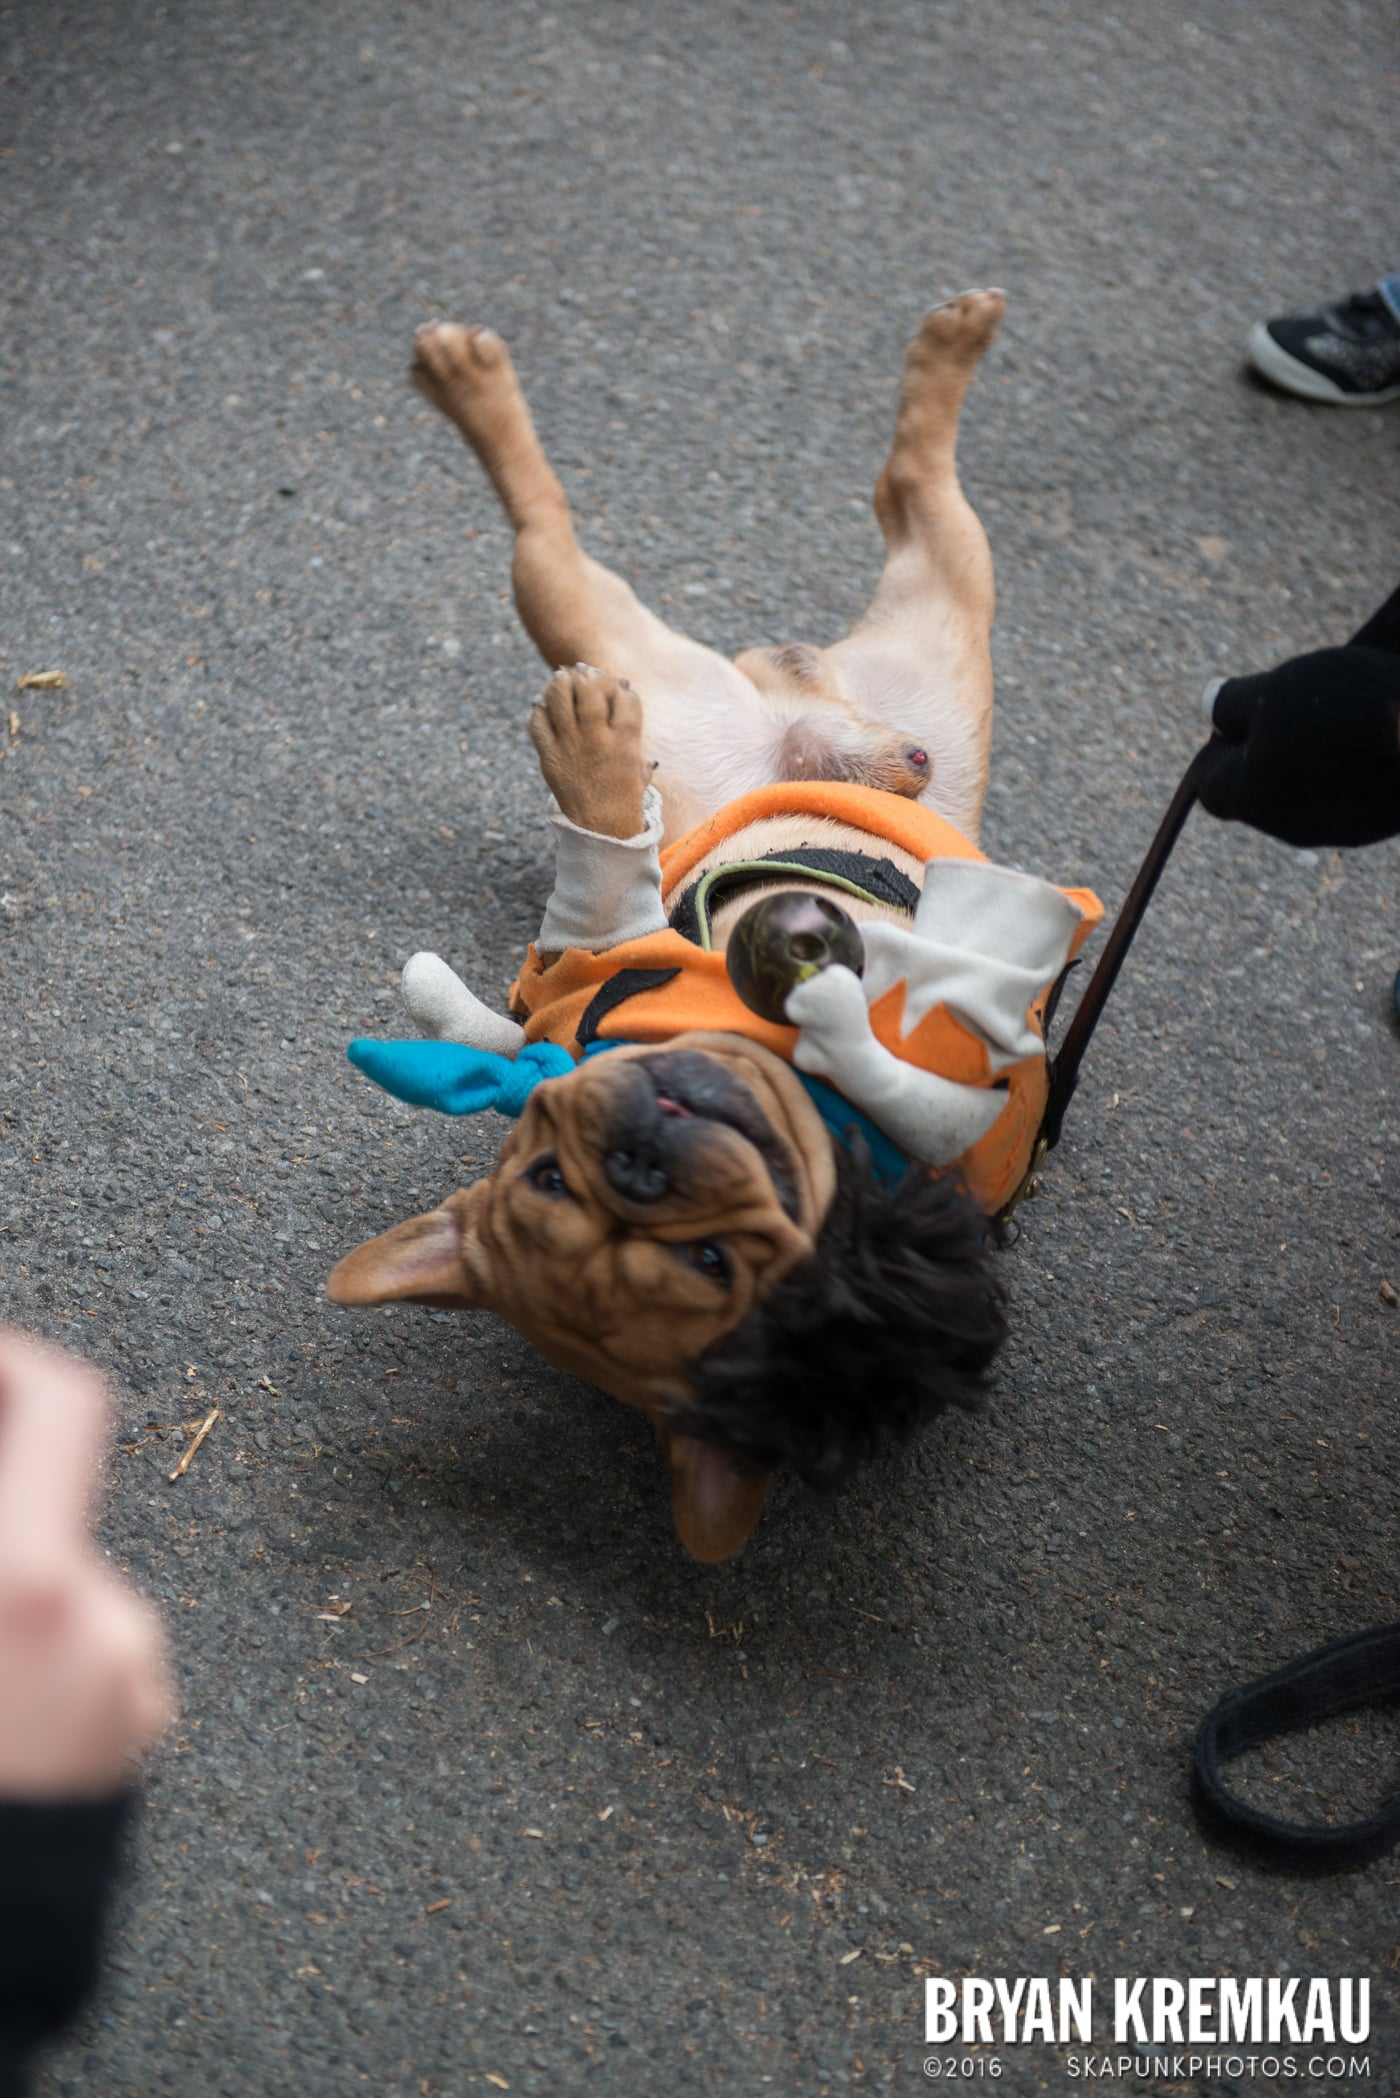 Tompkins Square Halloween Dog Parade 2015 @ Tompkins Square Park, NYC – 10.24.15 (19)